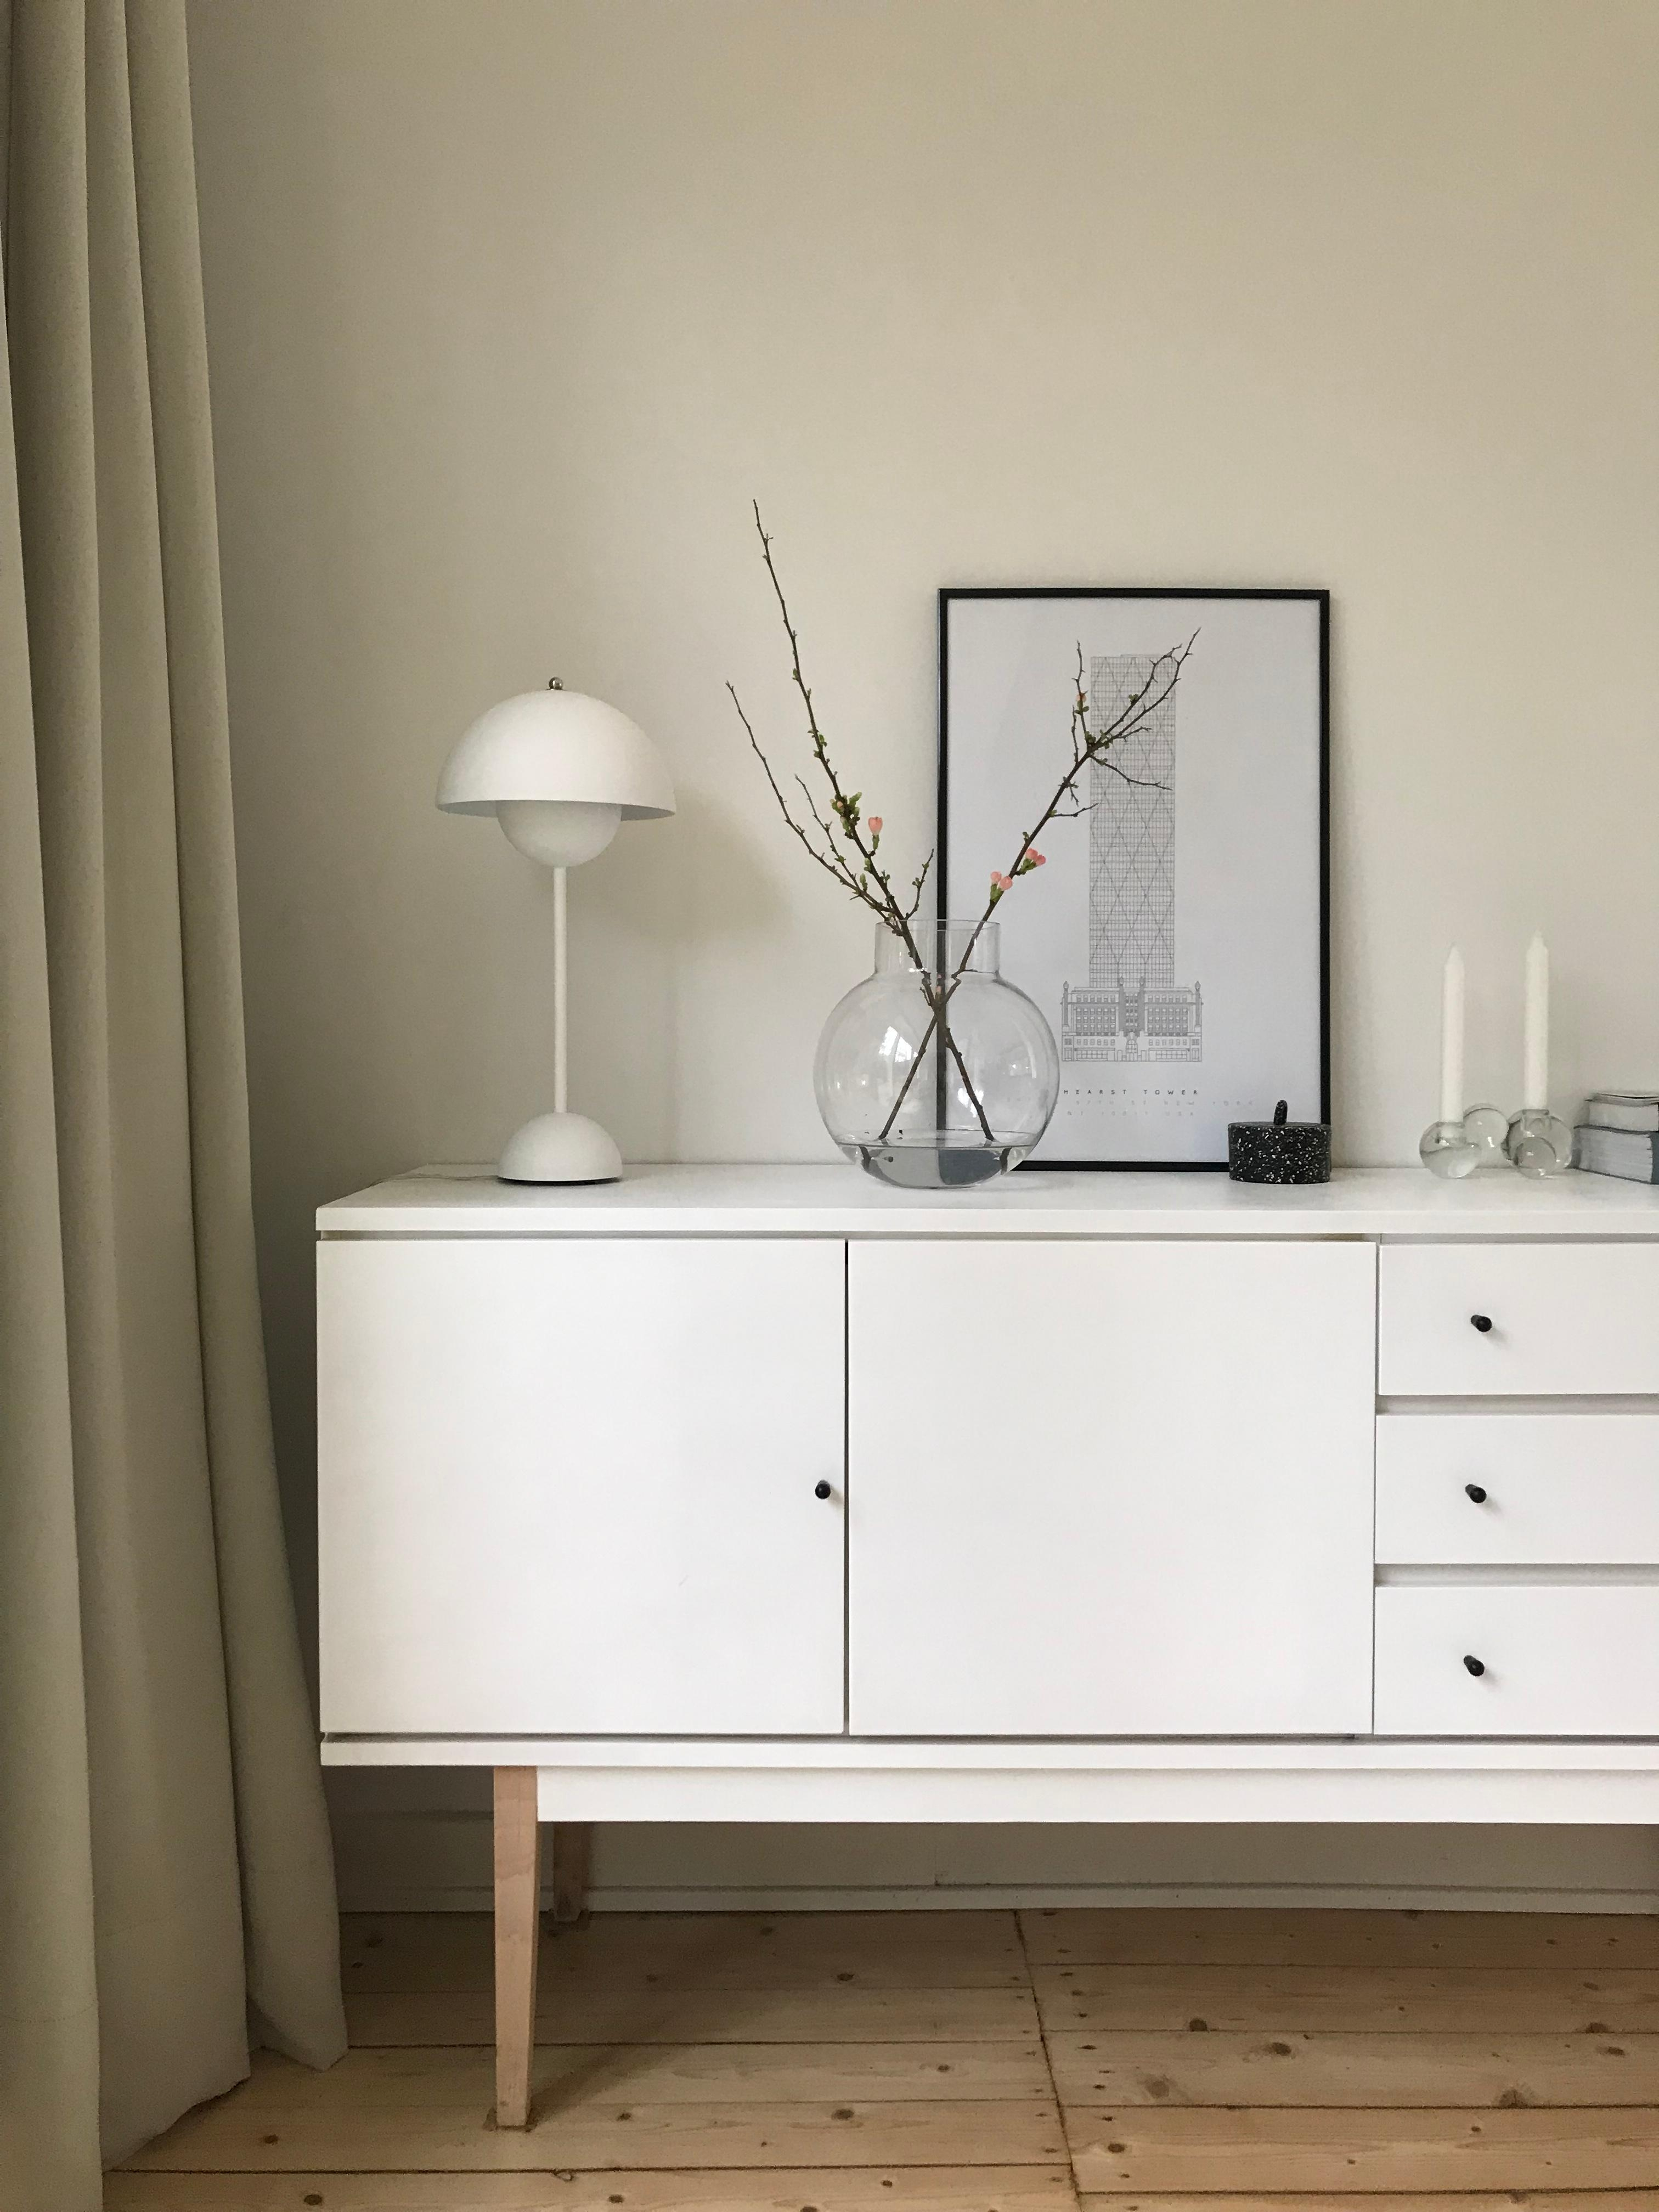 Mein lieblingsstueck kleinanzeigenfund upcycling sideboard minimalism  159efbf1 49f0 4a62 9d3e 7578cc030d1c